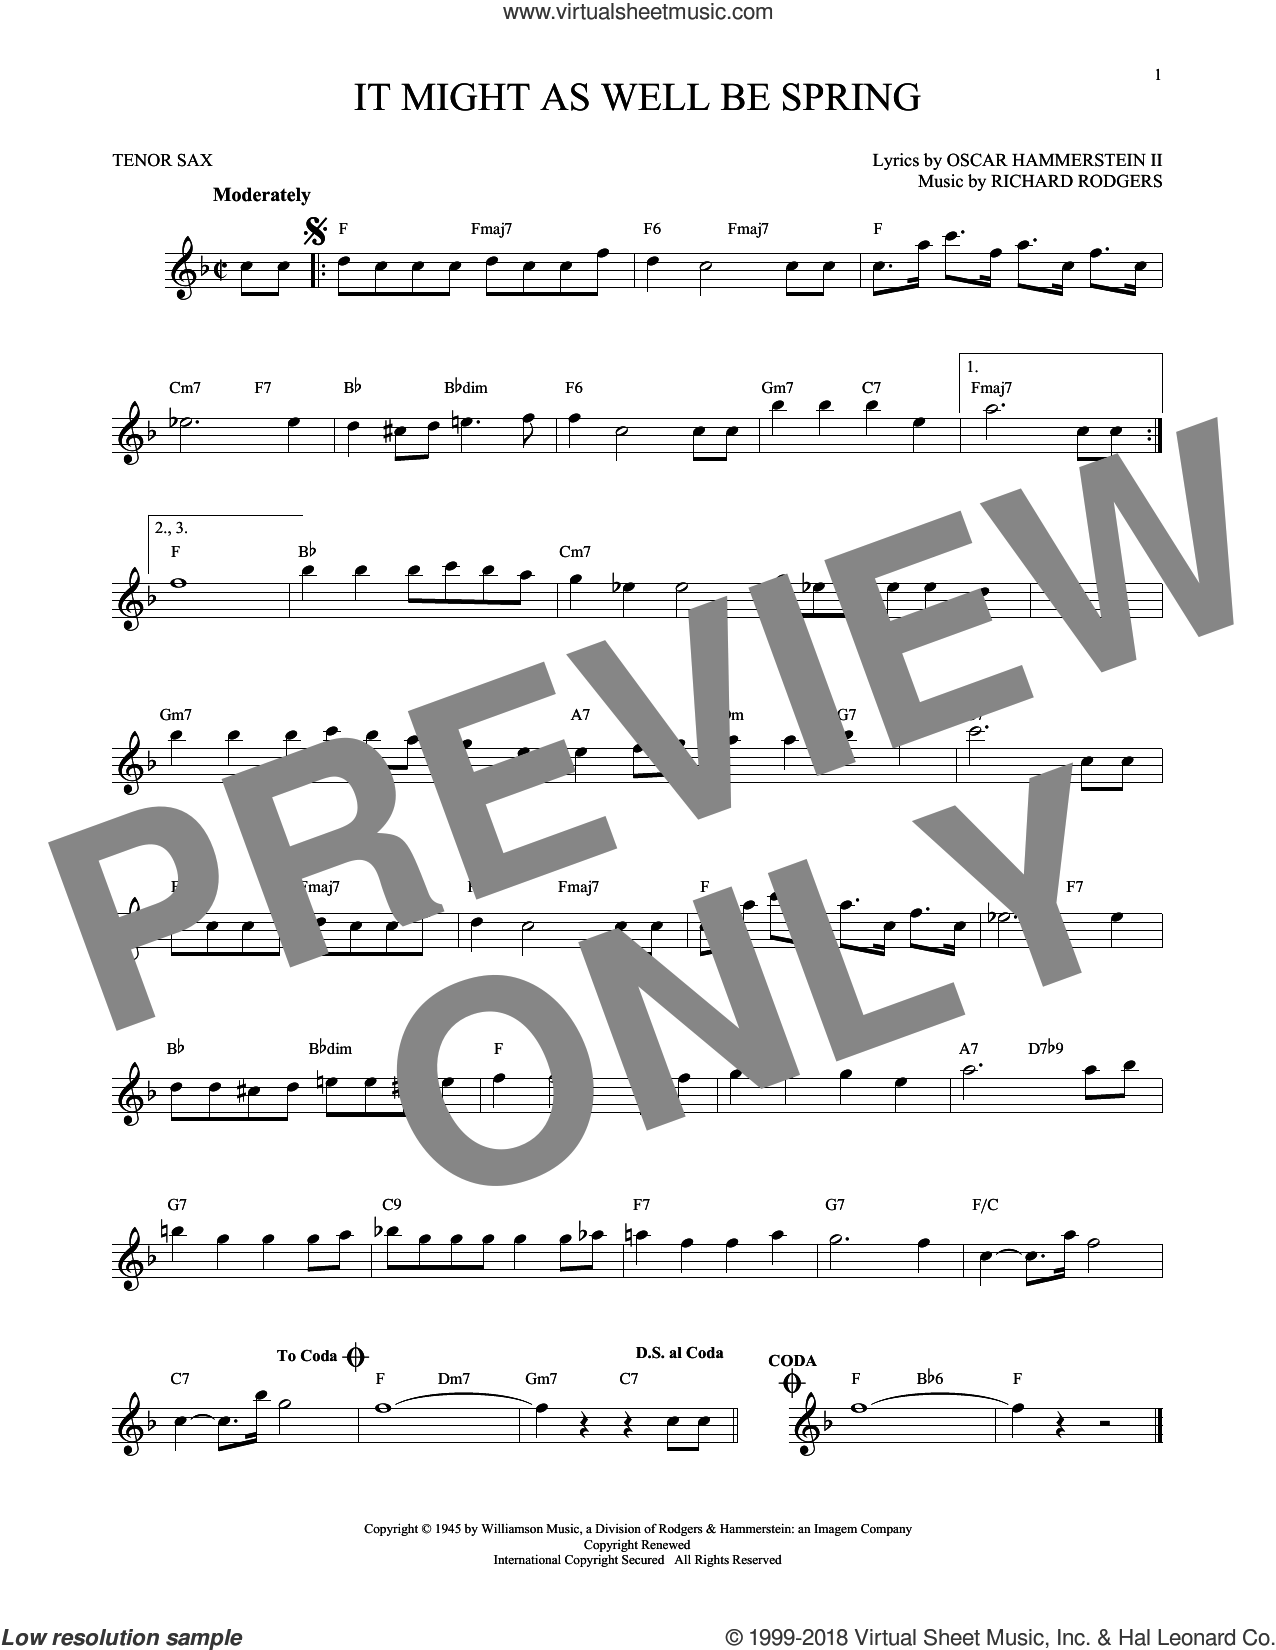 It Might As Well Be Spring sheet music for tenor saxophone solo by Rodgers & Hammerstein, Oscar II Hammerstein and Richard Rodgers, intermediate skill level